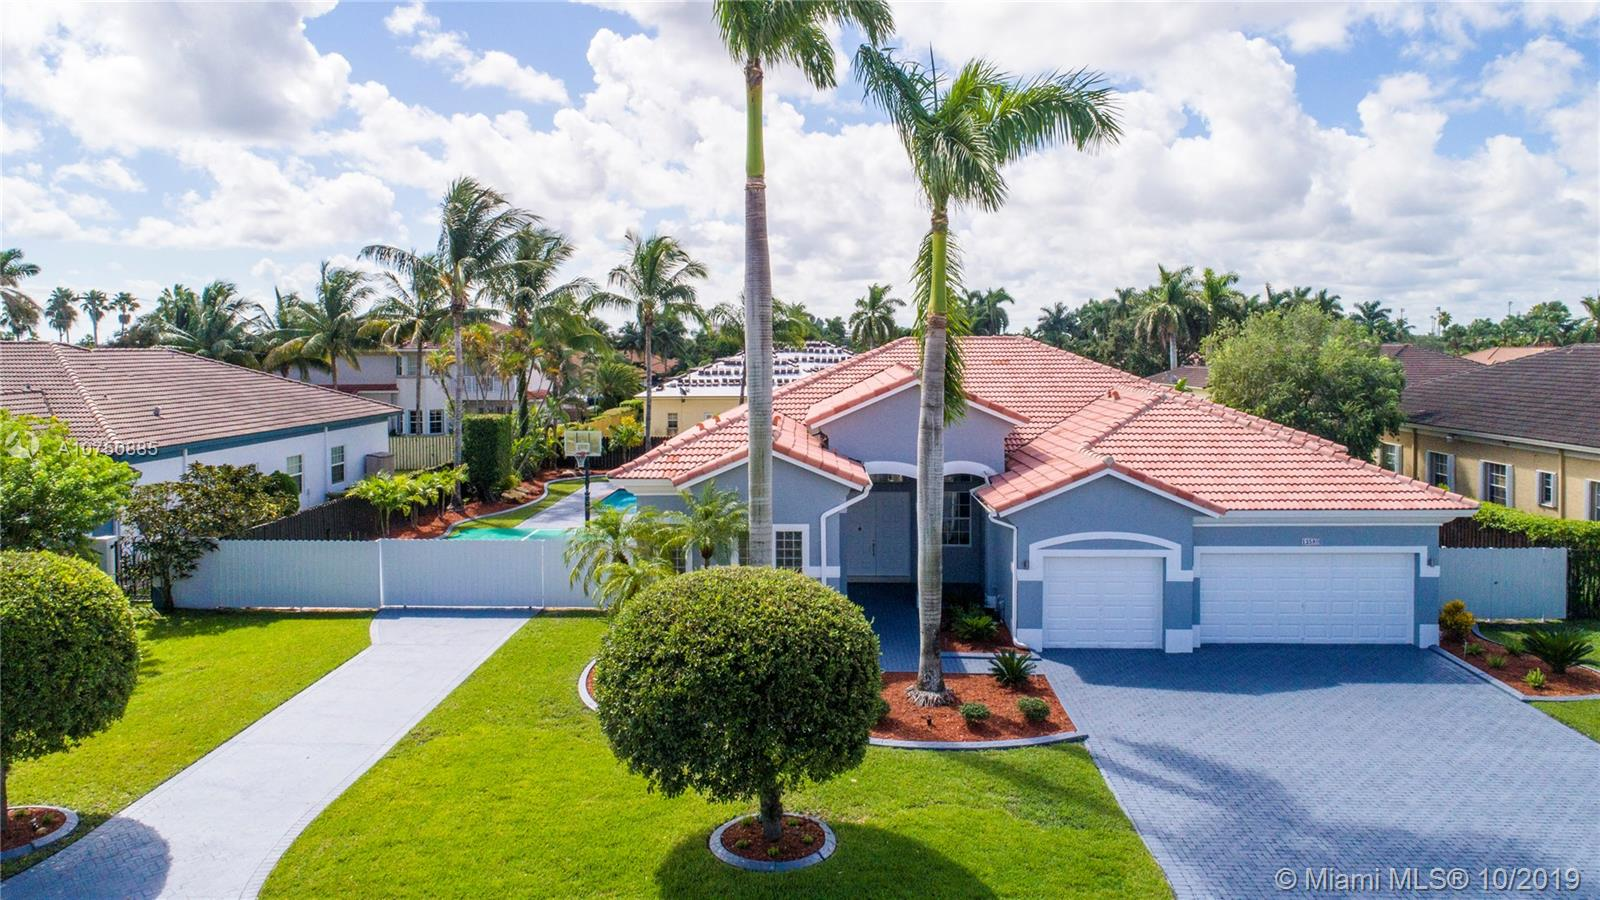 12580 SW 76th St, Kendall, Florida